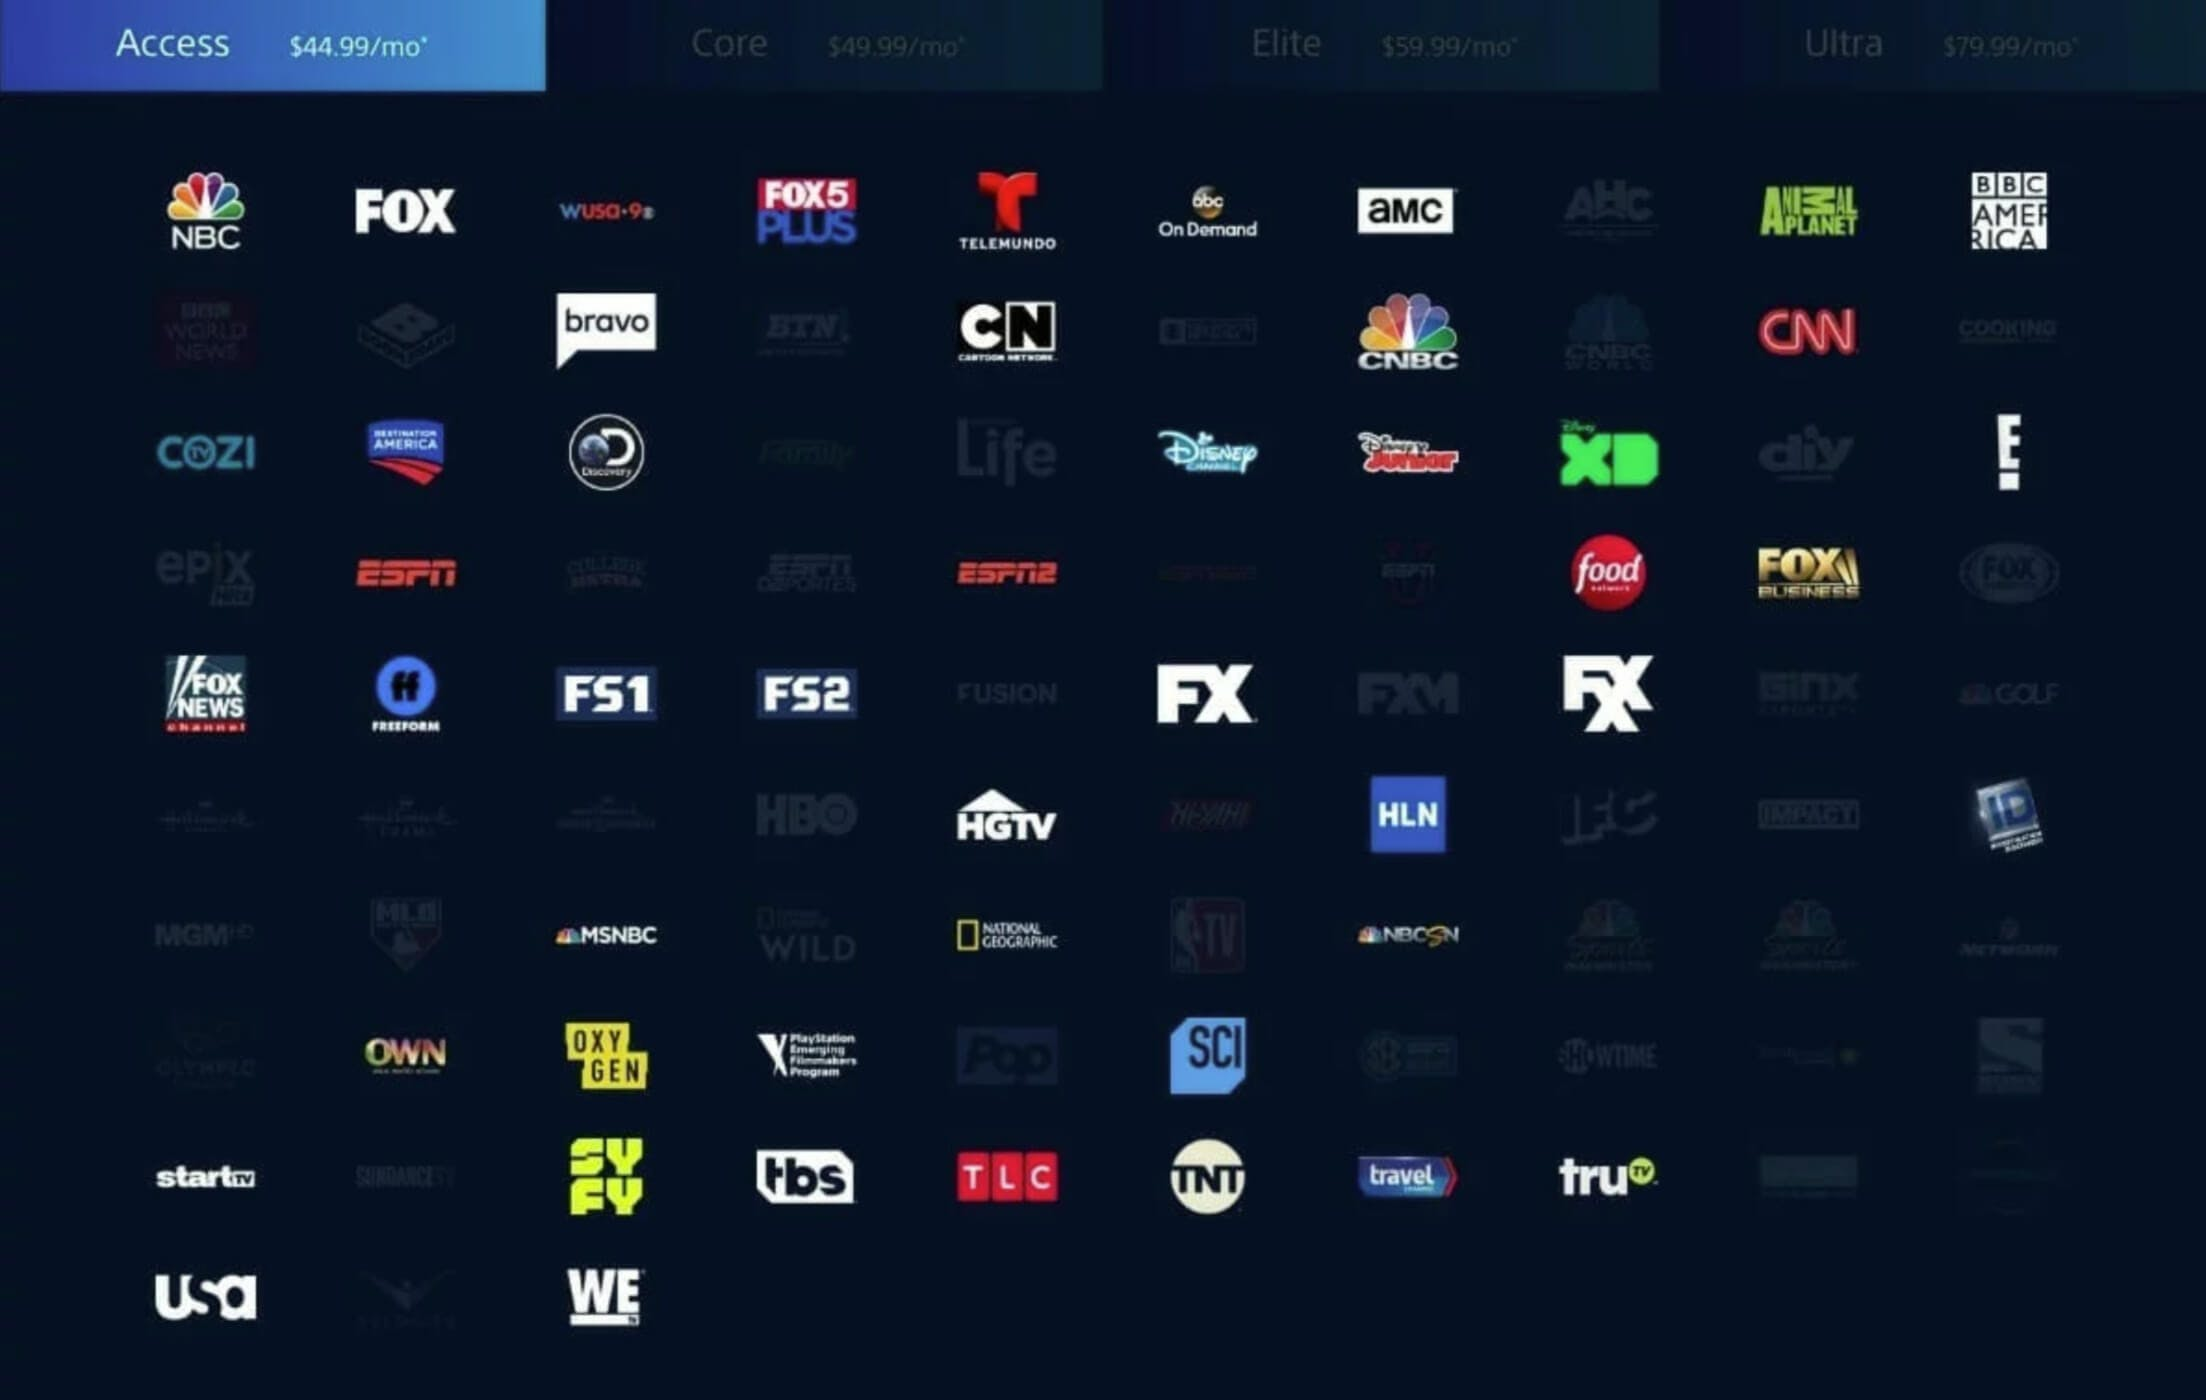 colts texans playstation vue streaming cbs nfl